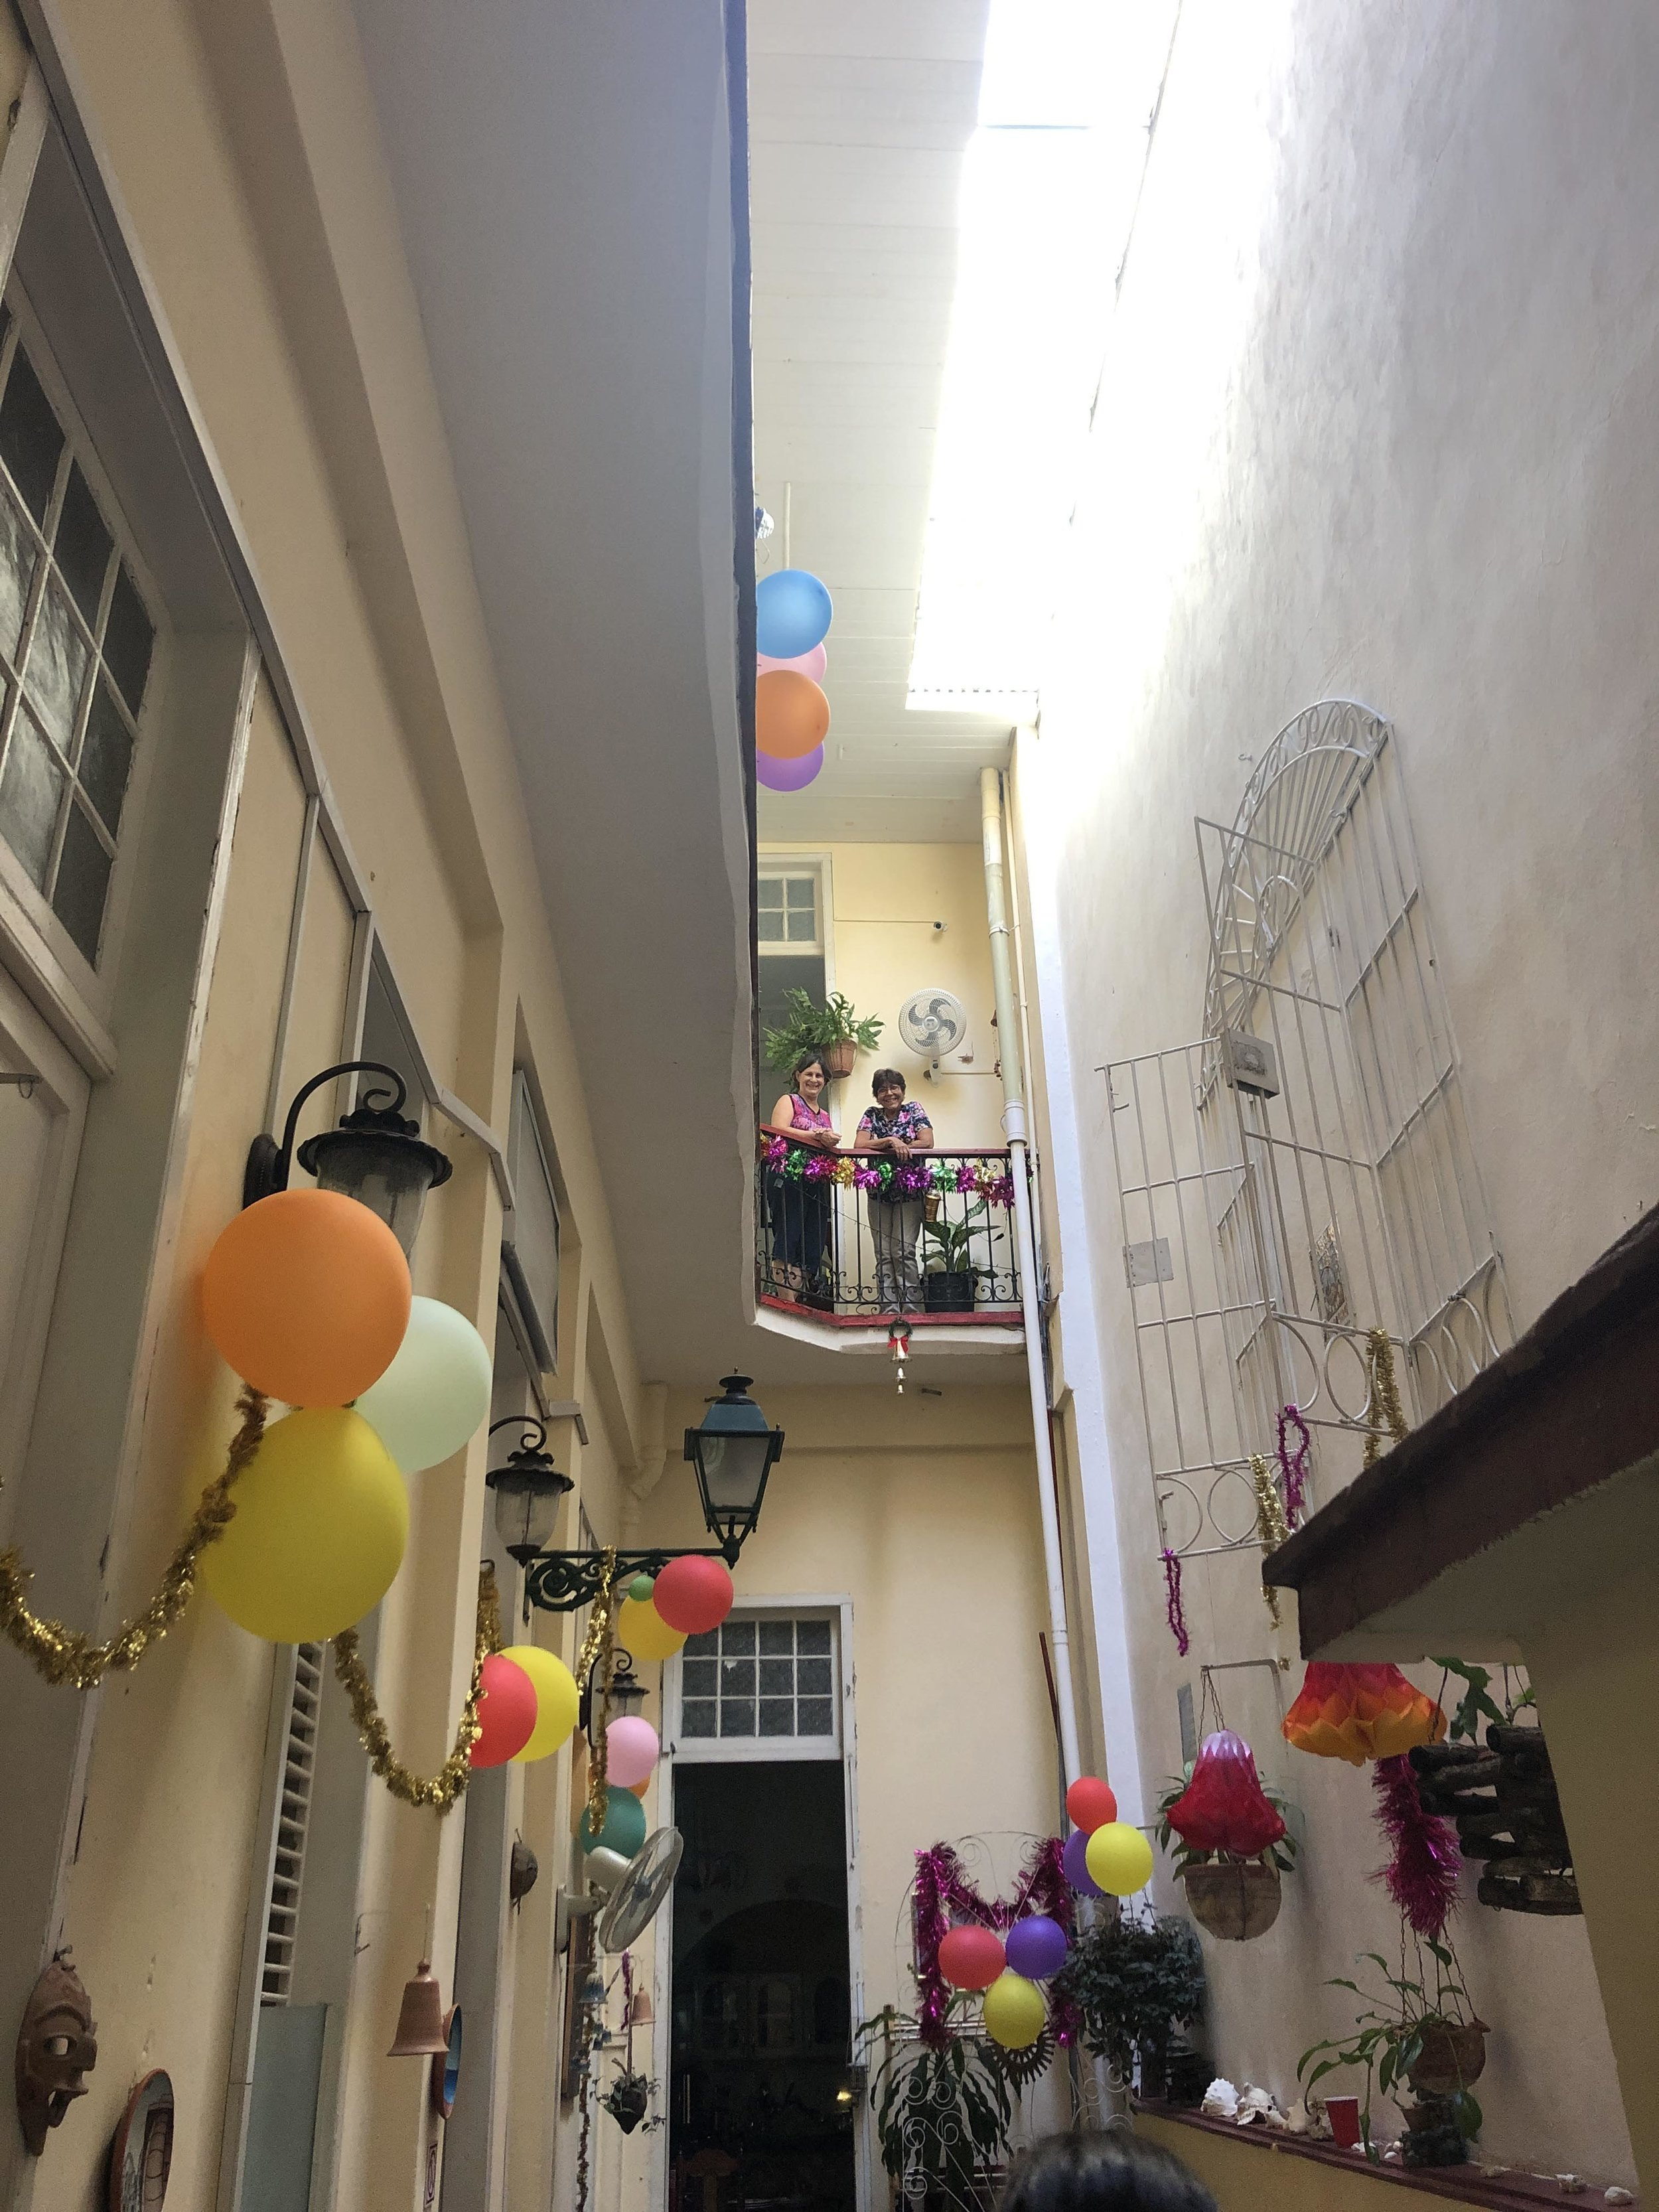 The charming women who ran our casa, decorated for a New Years party